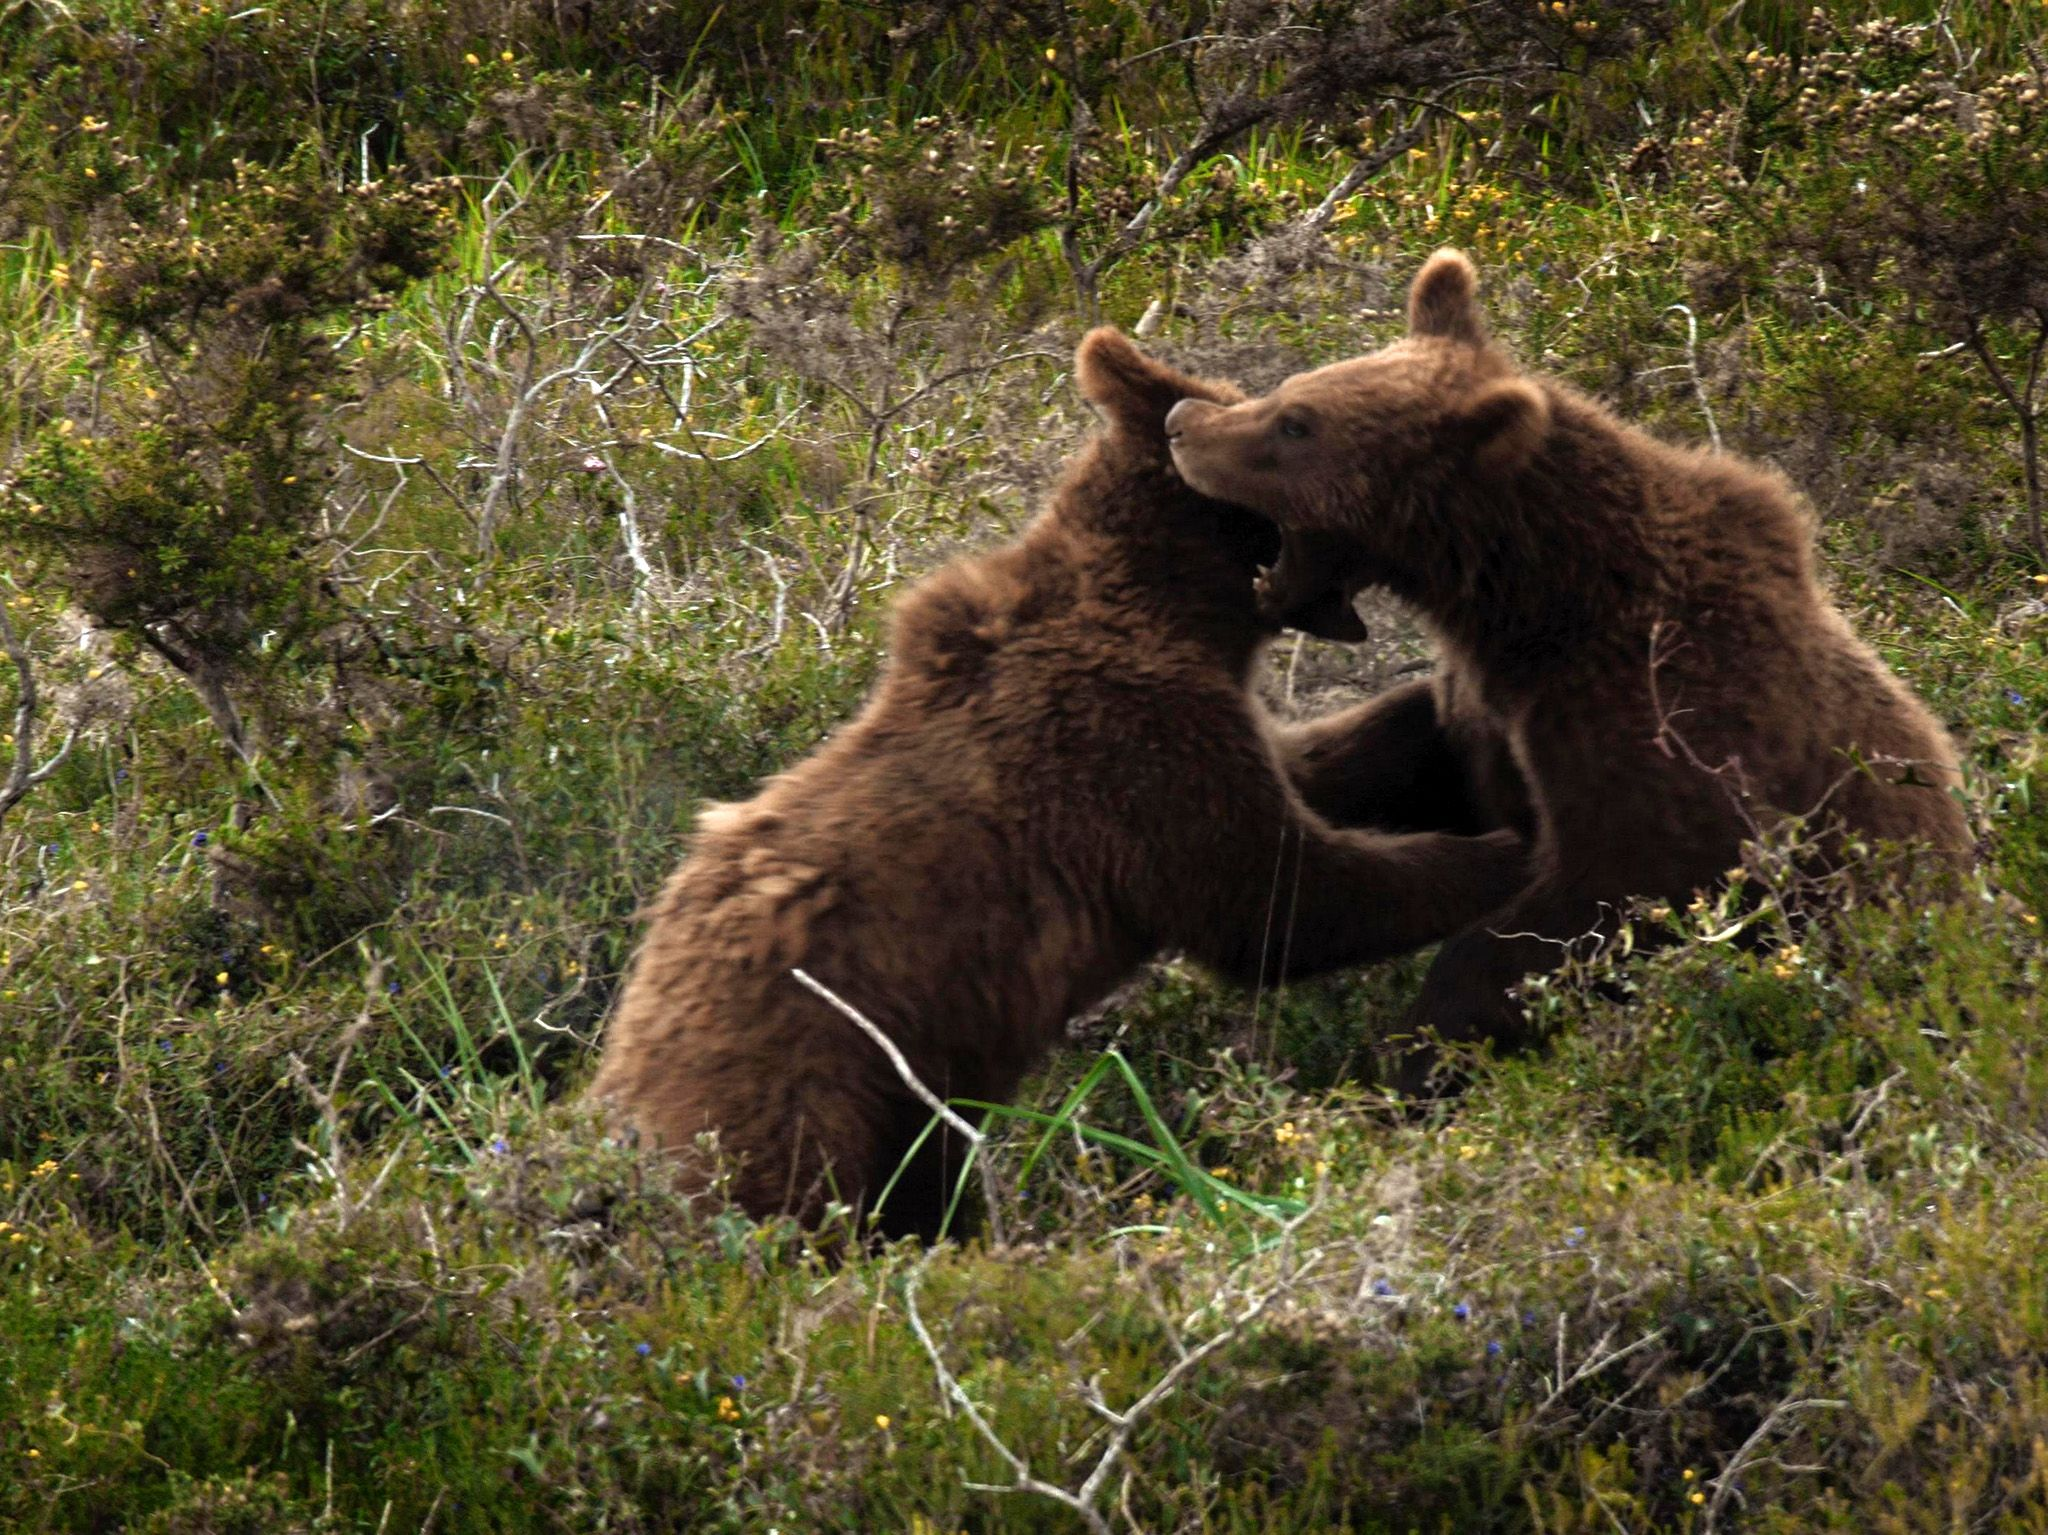 Two brown bears fighting. This image is from Wild Hunters. [Photo of the day - می 2019]